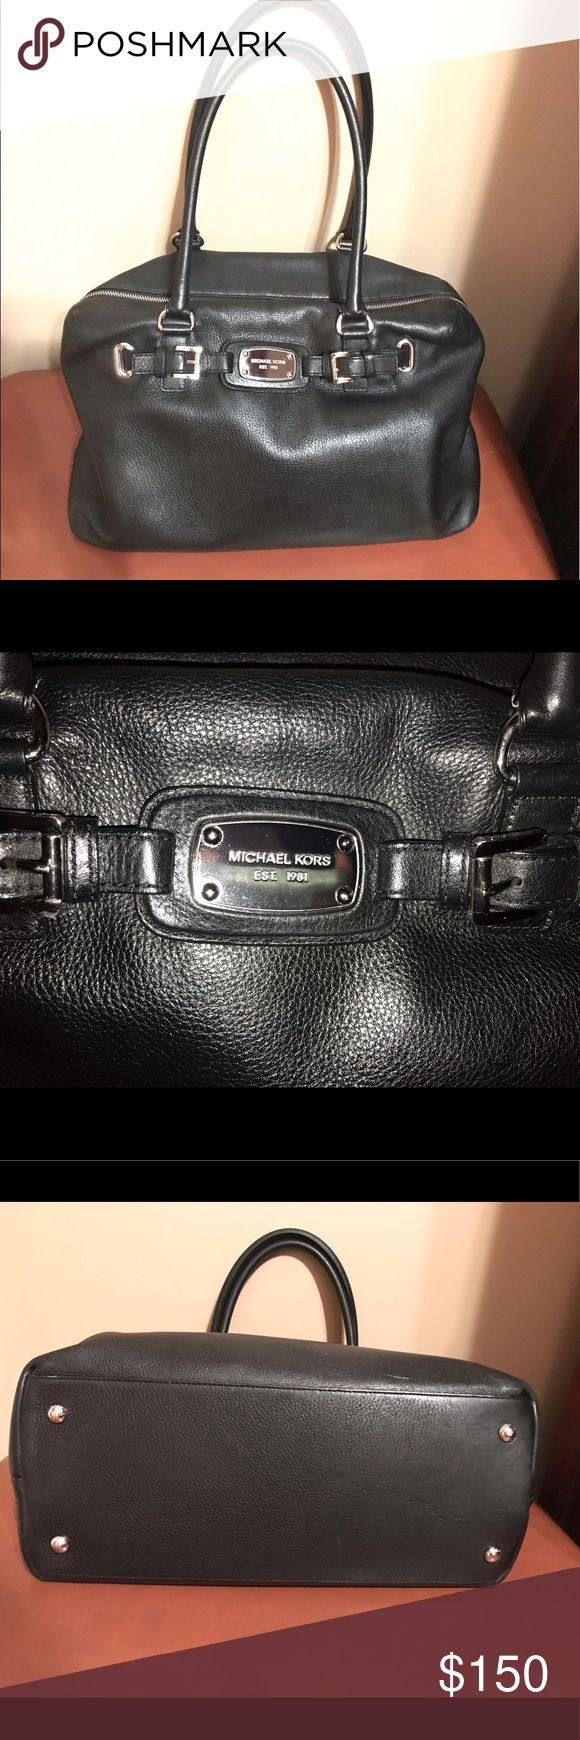 Michael Kors Large Black Bag In good condition, lightly used.  Perfect for work or a weekend getaway. Michael Kors Bags Shoulder Bags